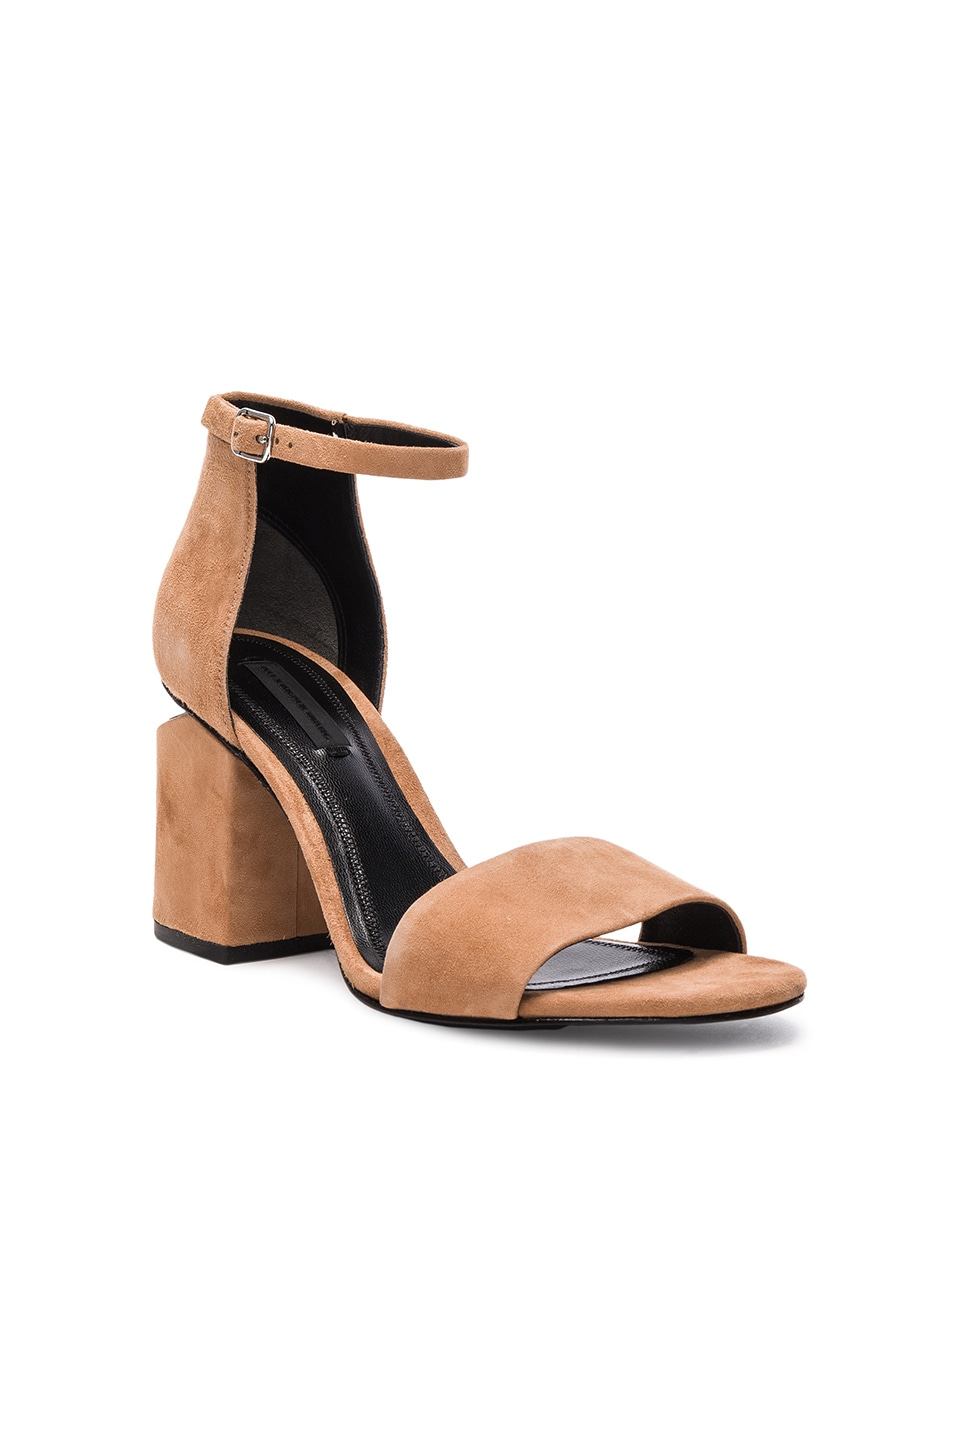 Image 2 of Alexander Wang Abby Suede Heels in Clay